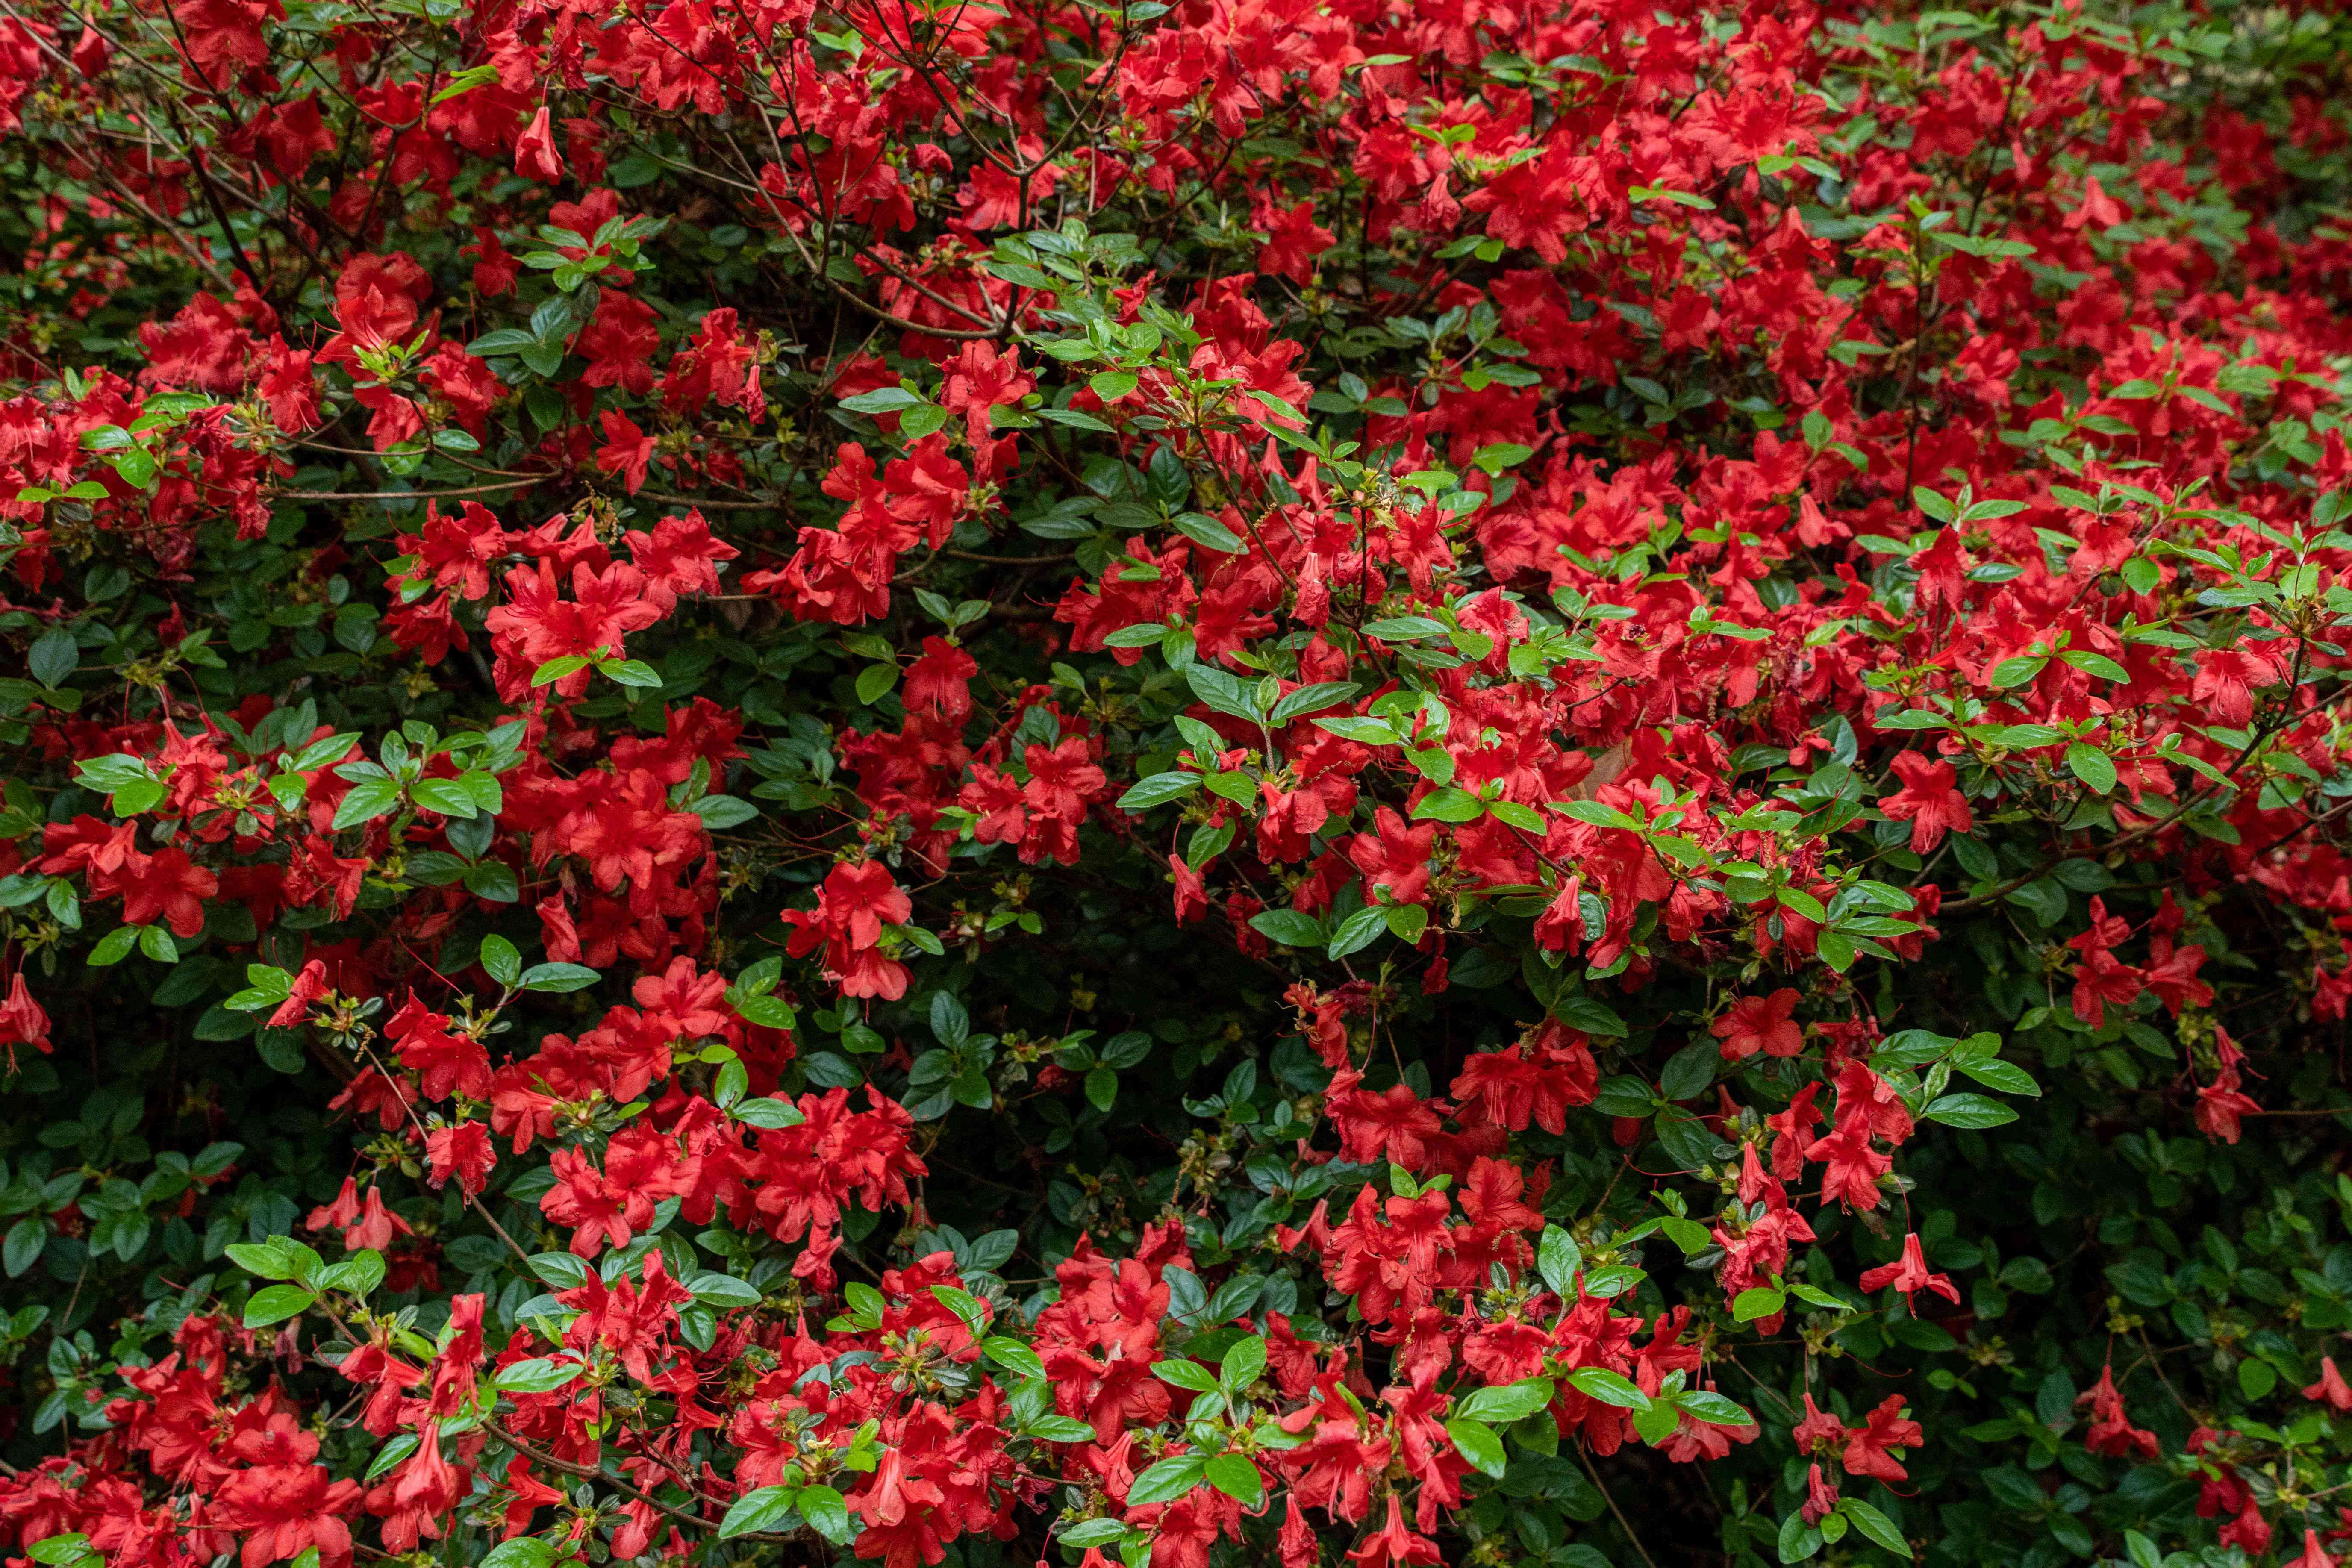 Azalea bush with red flowers and green leaves on dense branches